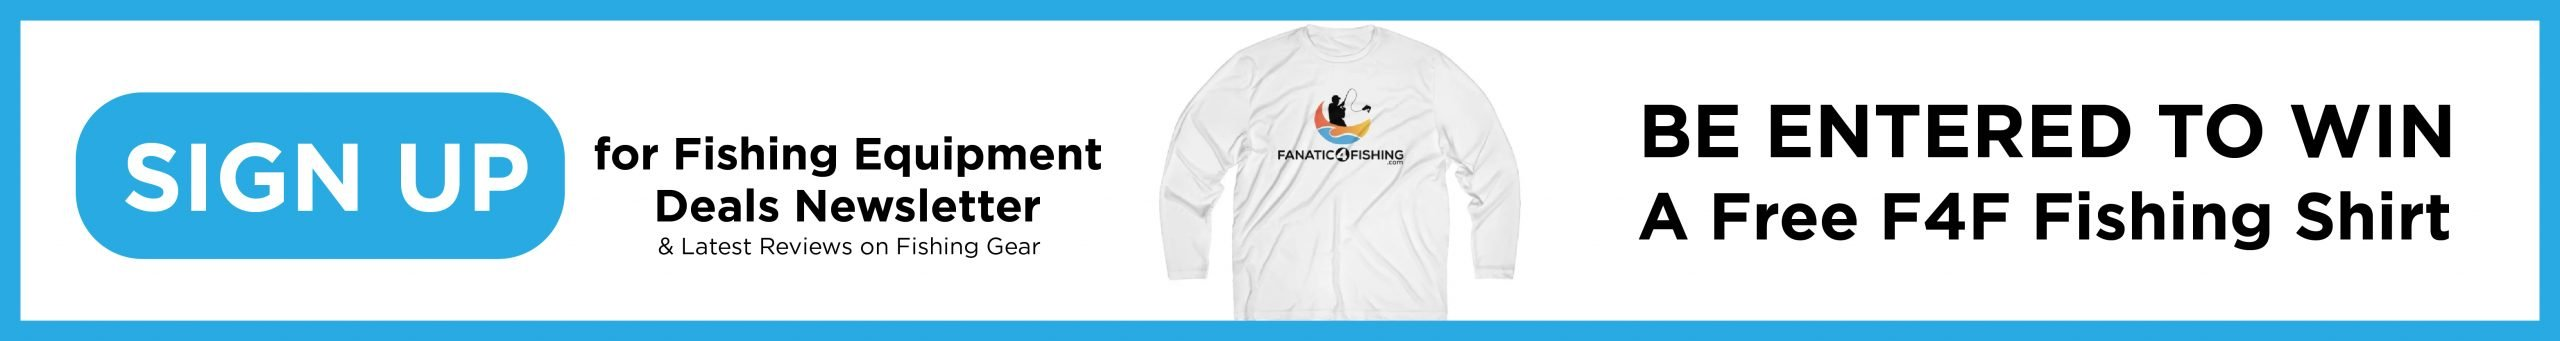 Enter to Win Fishing Shirt